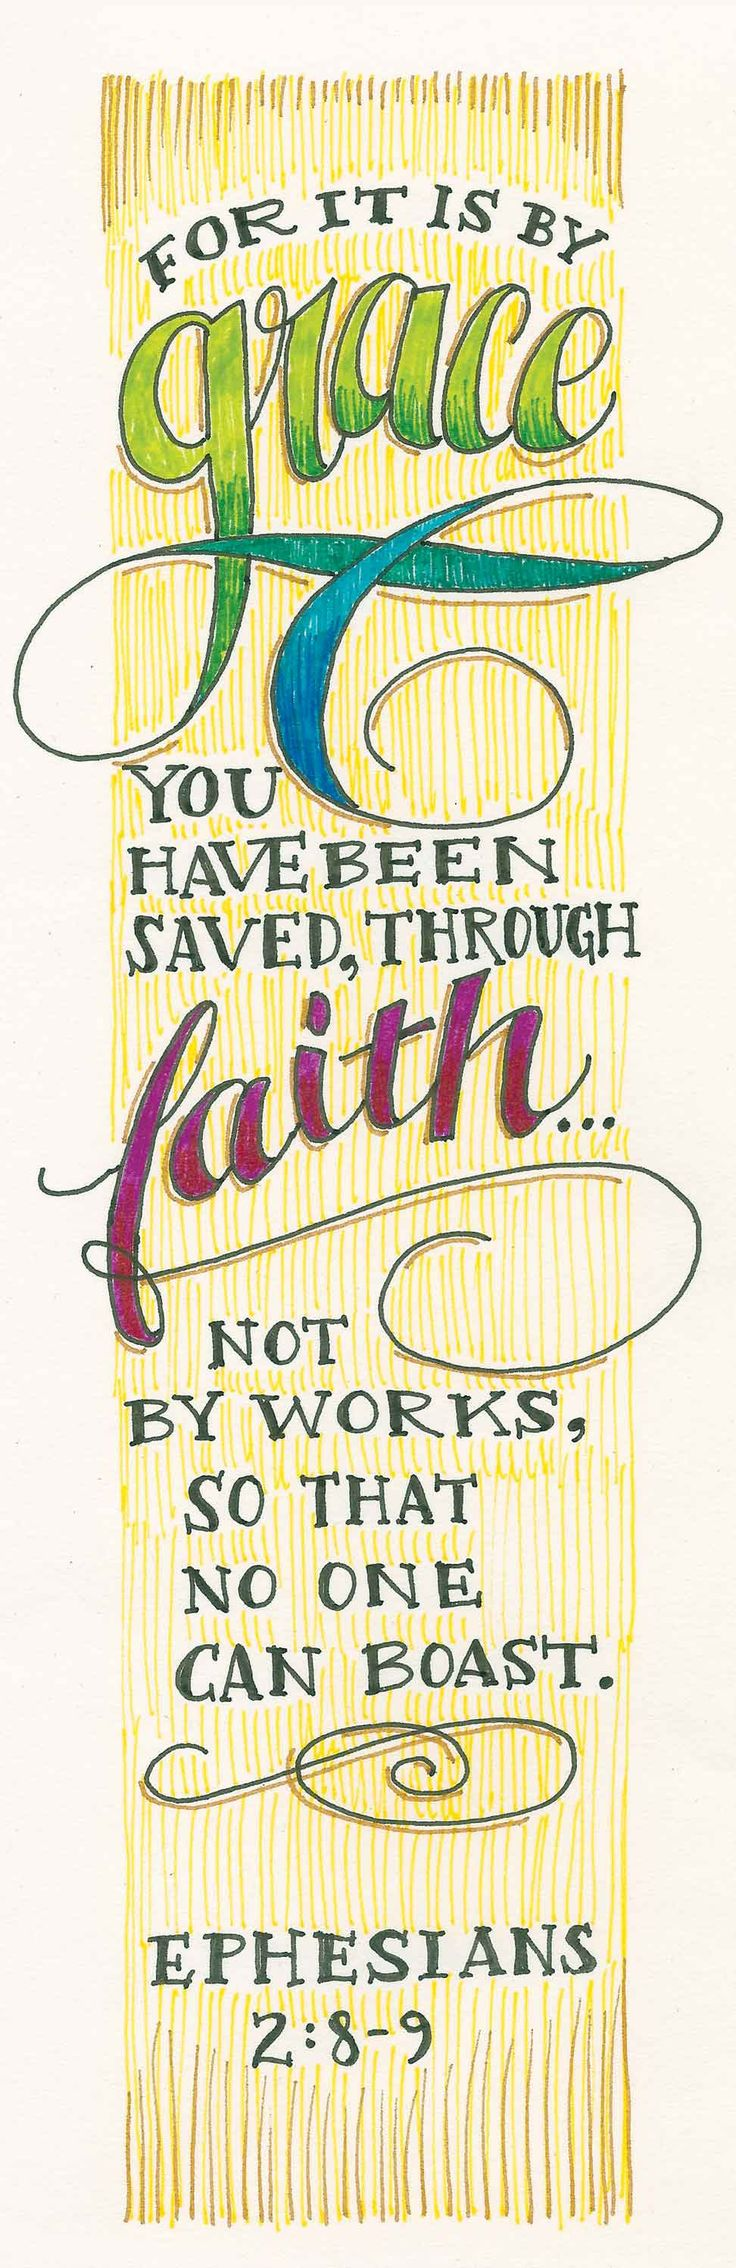 God saves us by grace not by our own works.